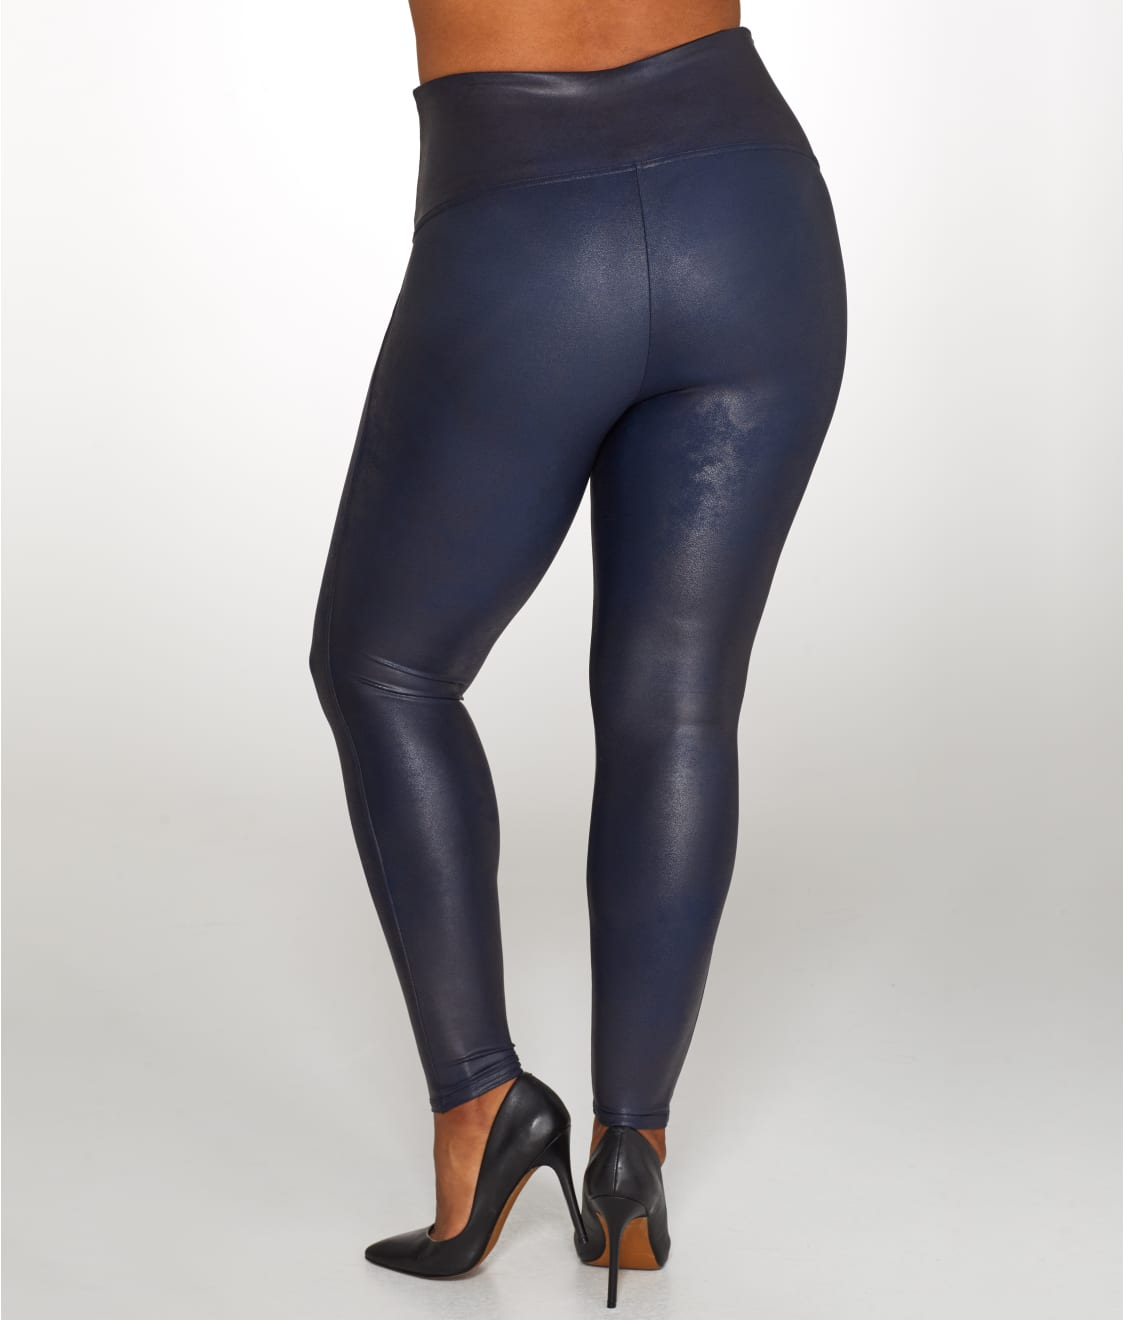 22d5d31d103 See Plus Size Ready-to-Wow Faux Leather Leggings in Night Navy